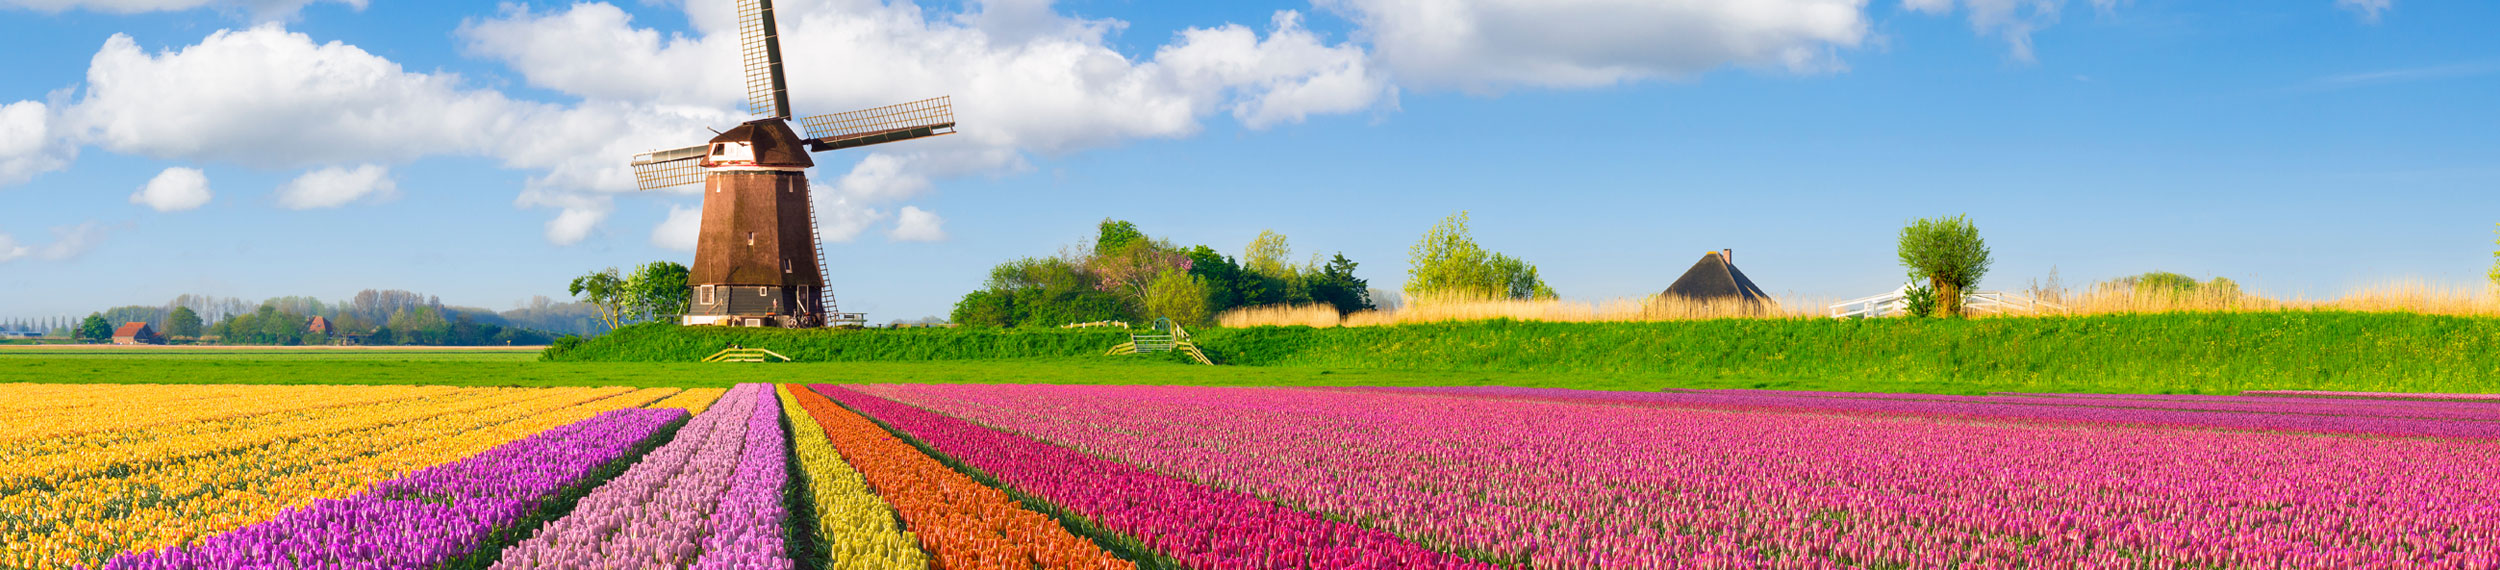 Color rows of tulips and a windmill in the background in The Netherlands.